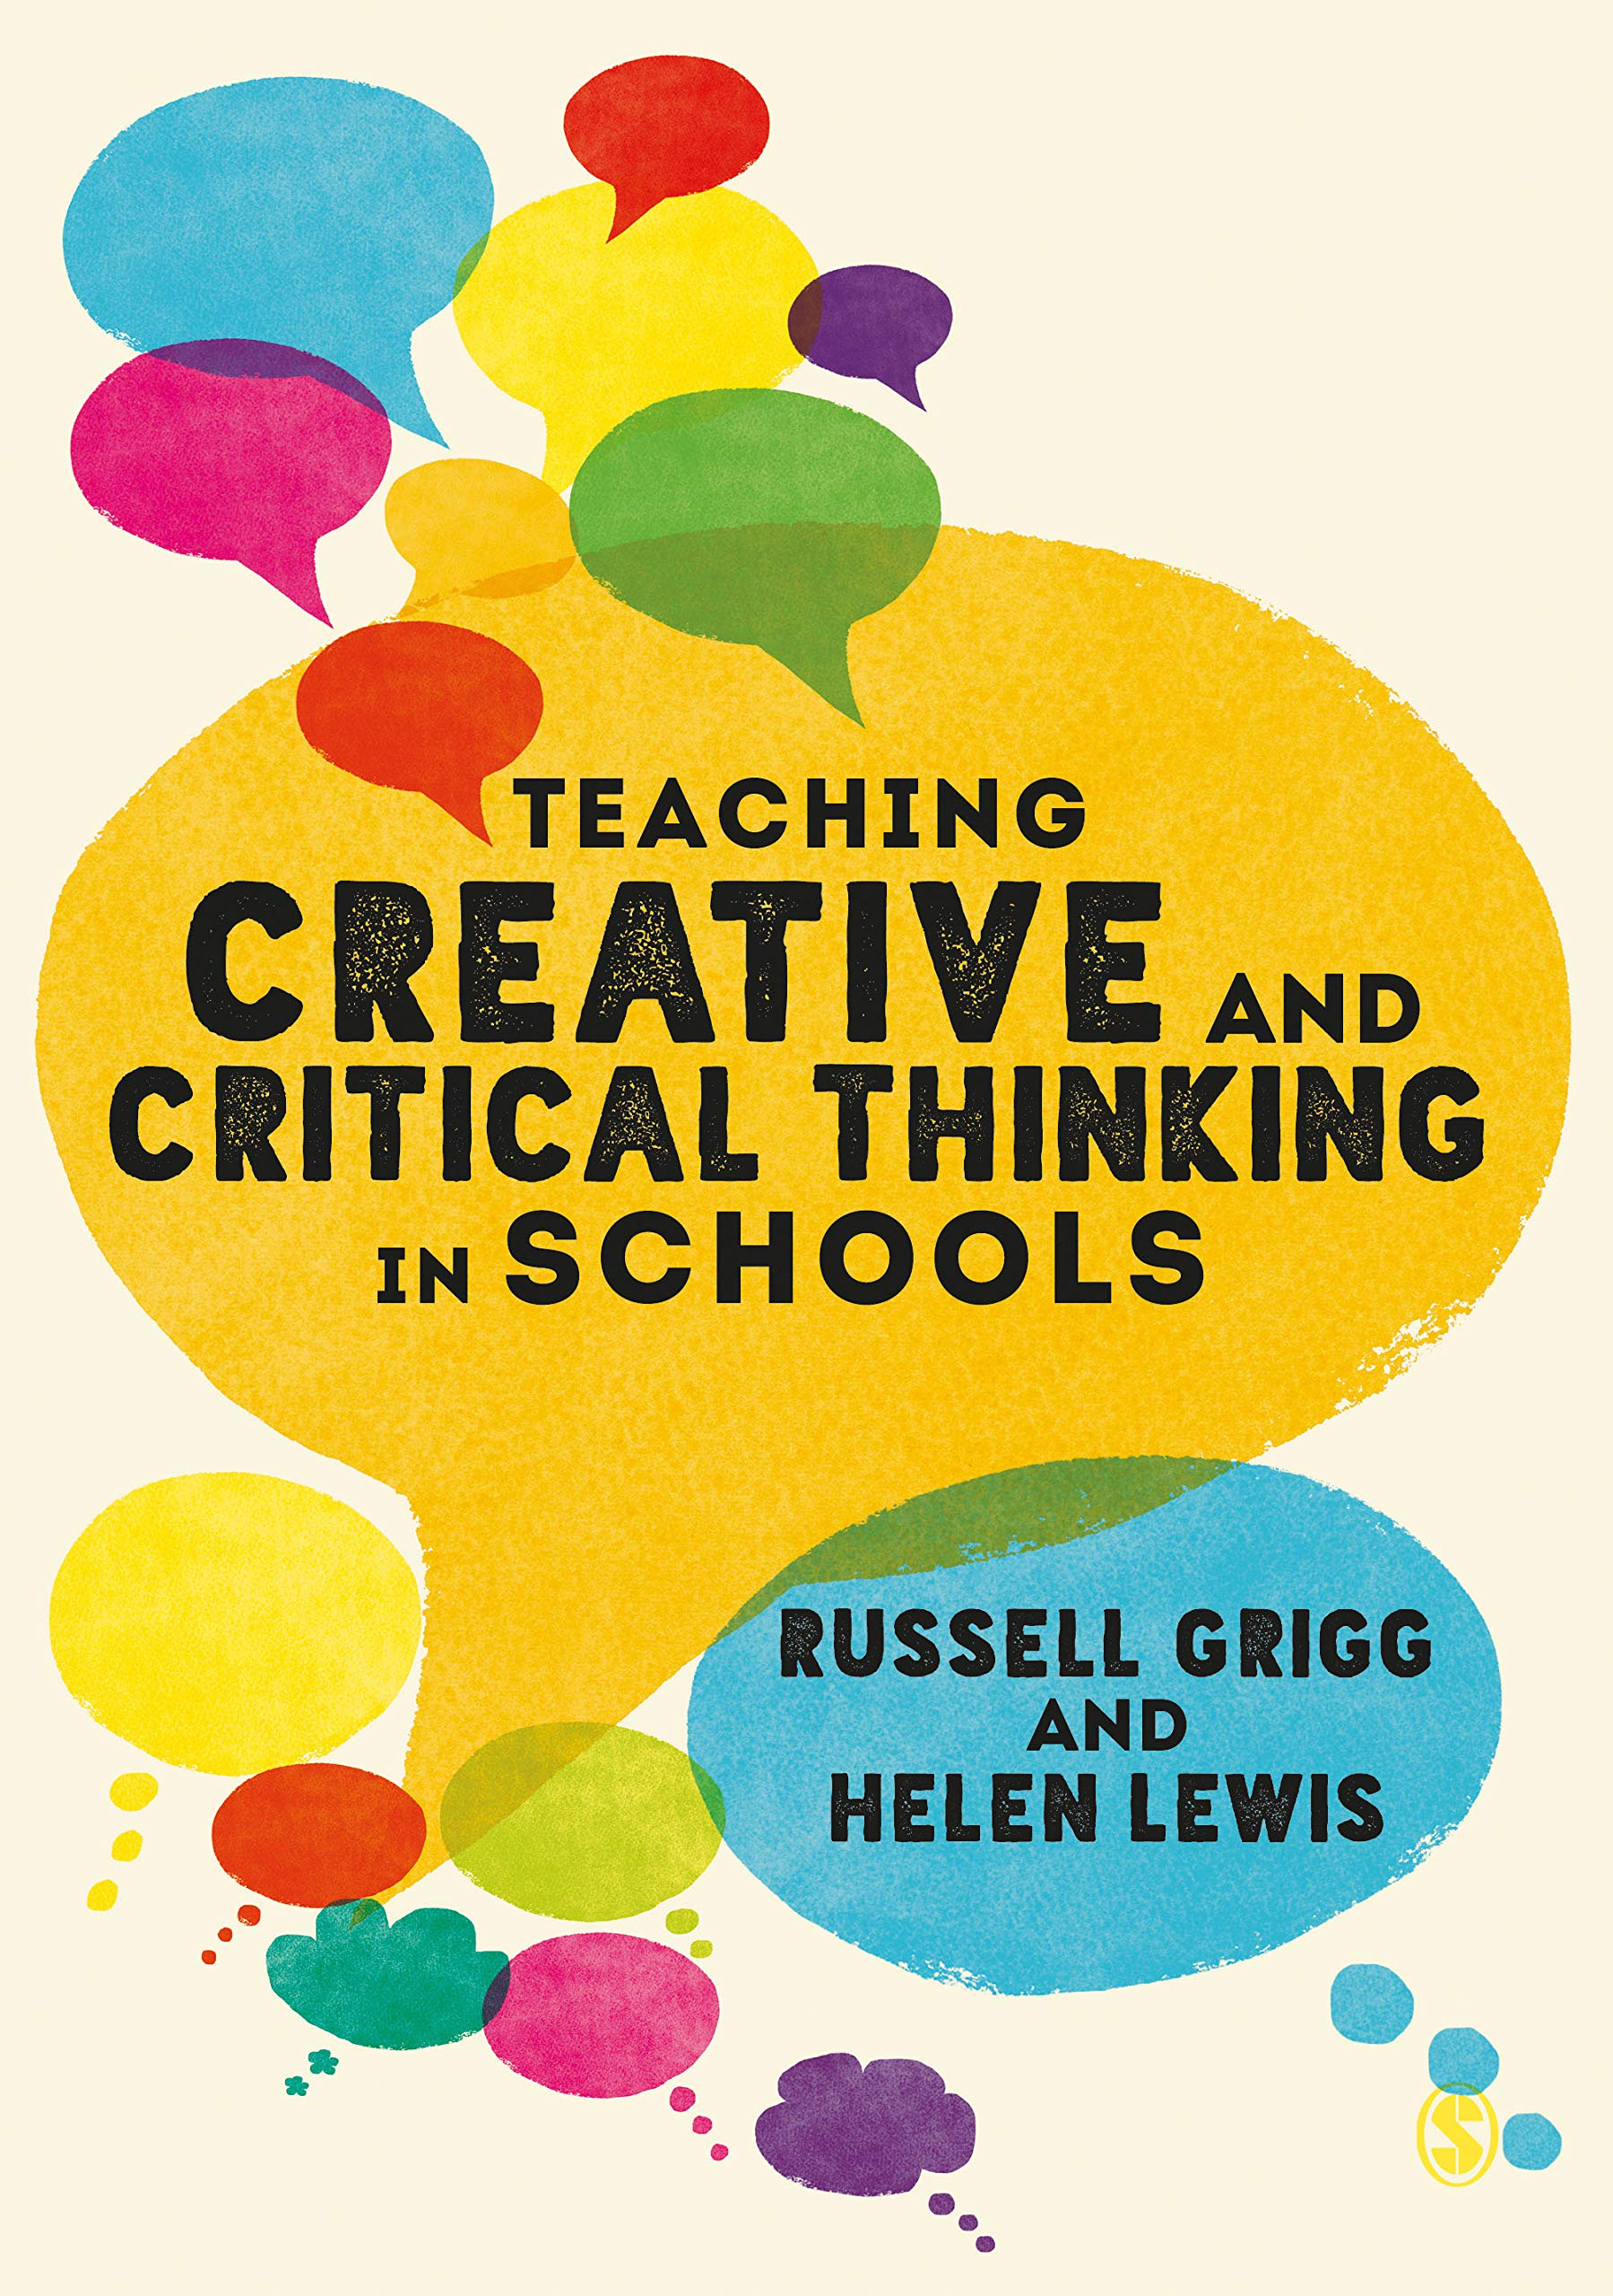 Articles on Critical Thinking in the Arts